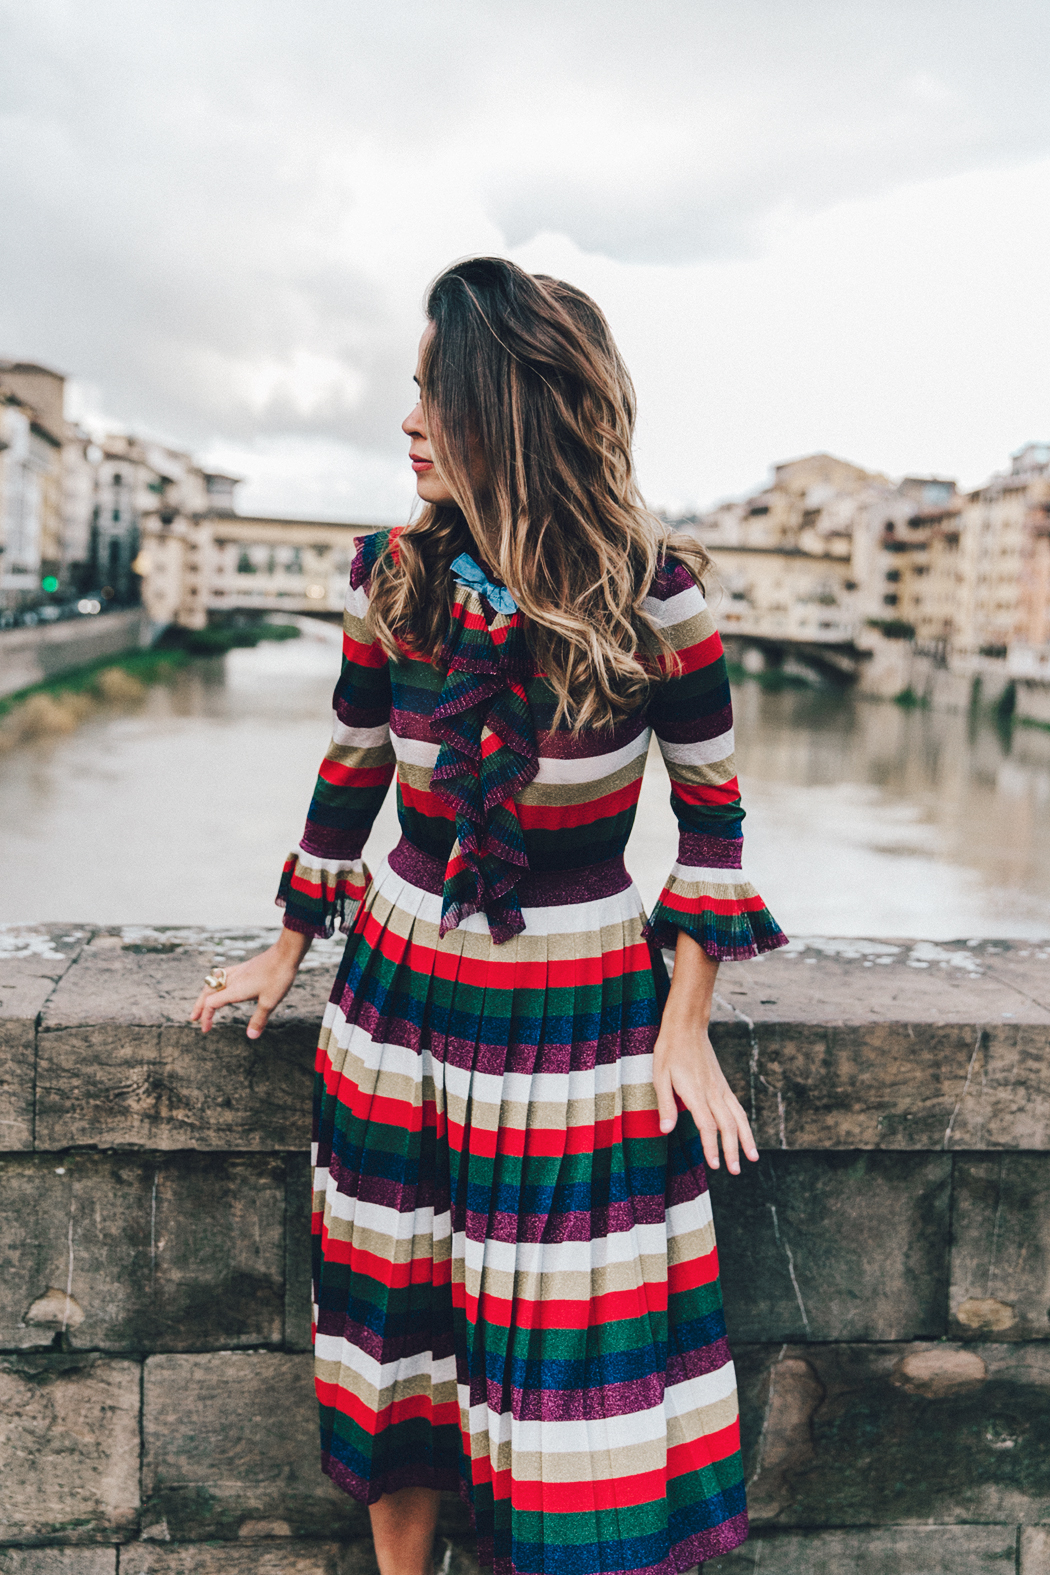 Firenze4Ever-Luisa_VIa_Roma-Gucci_Striped_Dress-Gucci_Gold_Sandals-Outfit-Florence-Street_Style-13